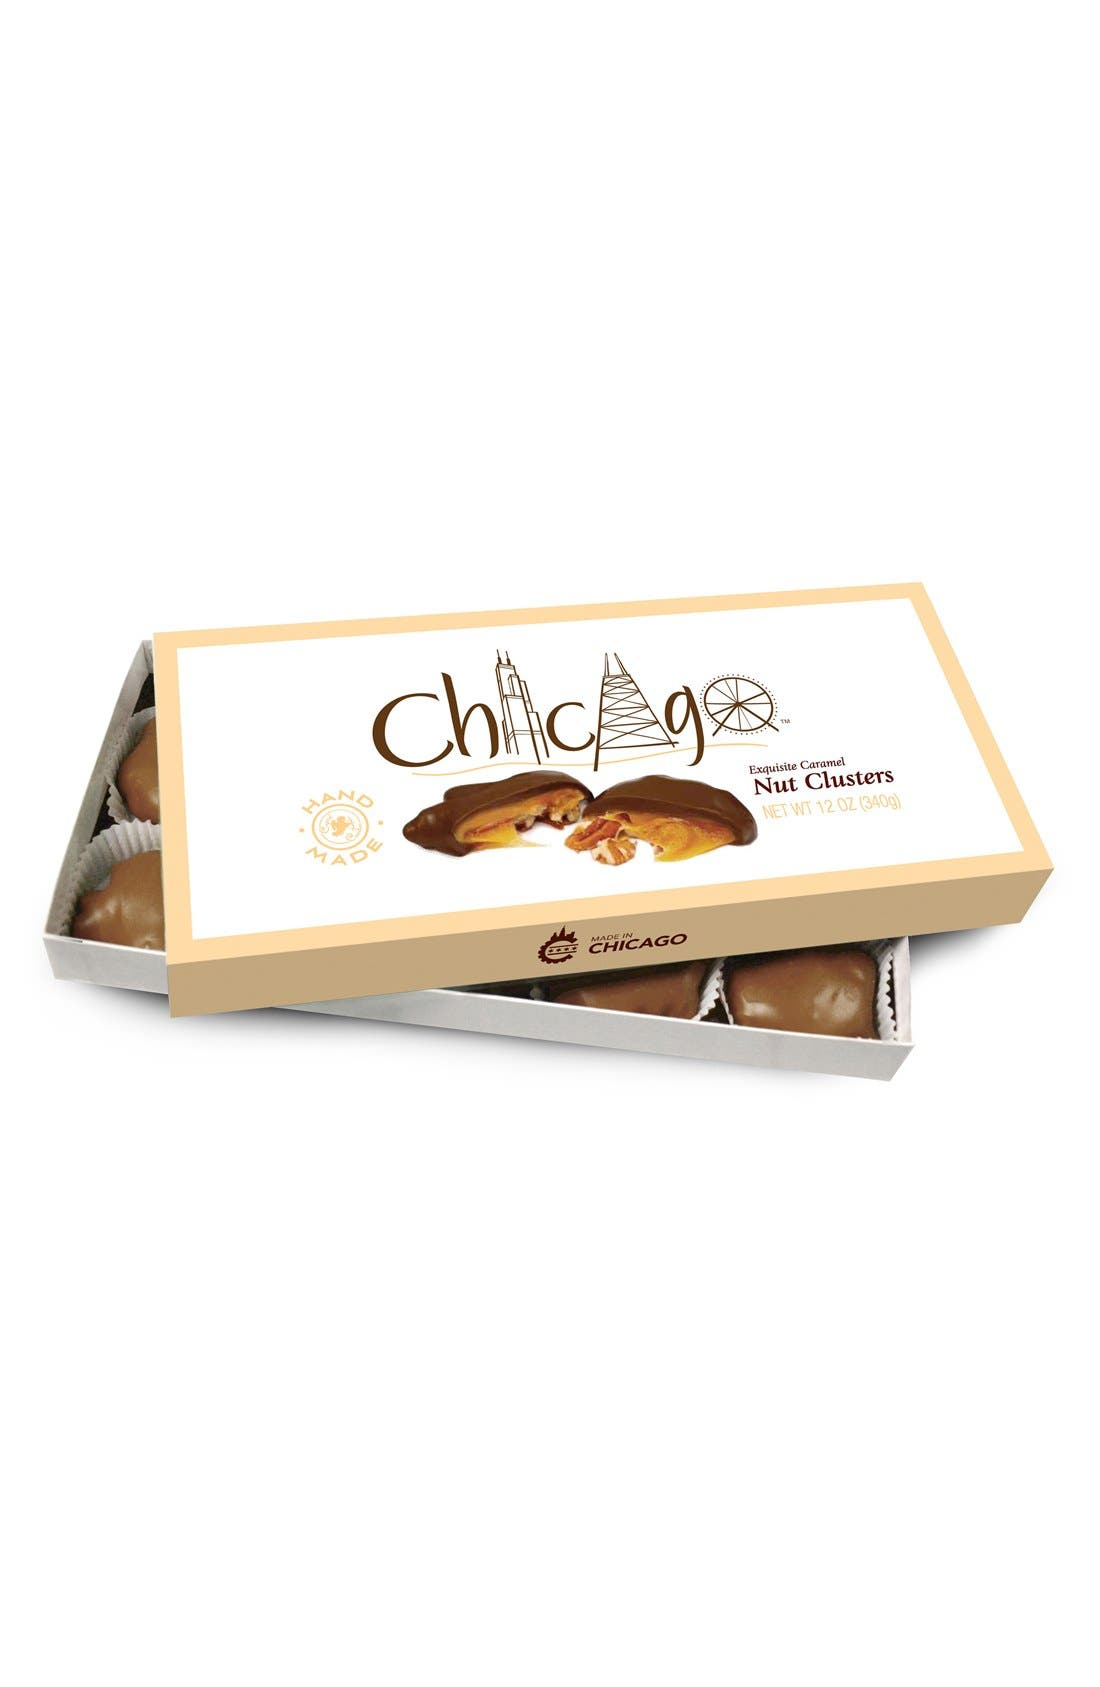 Chicago Classic Confections Caramel Nut Clusters